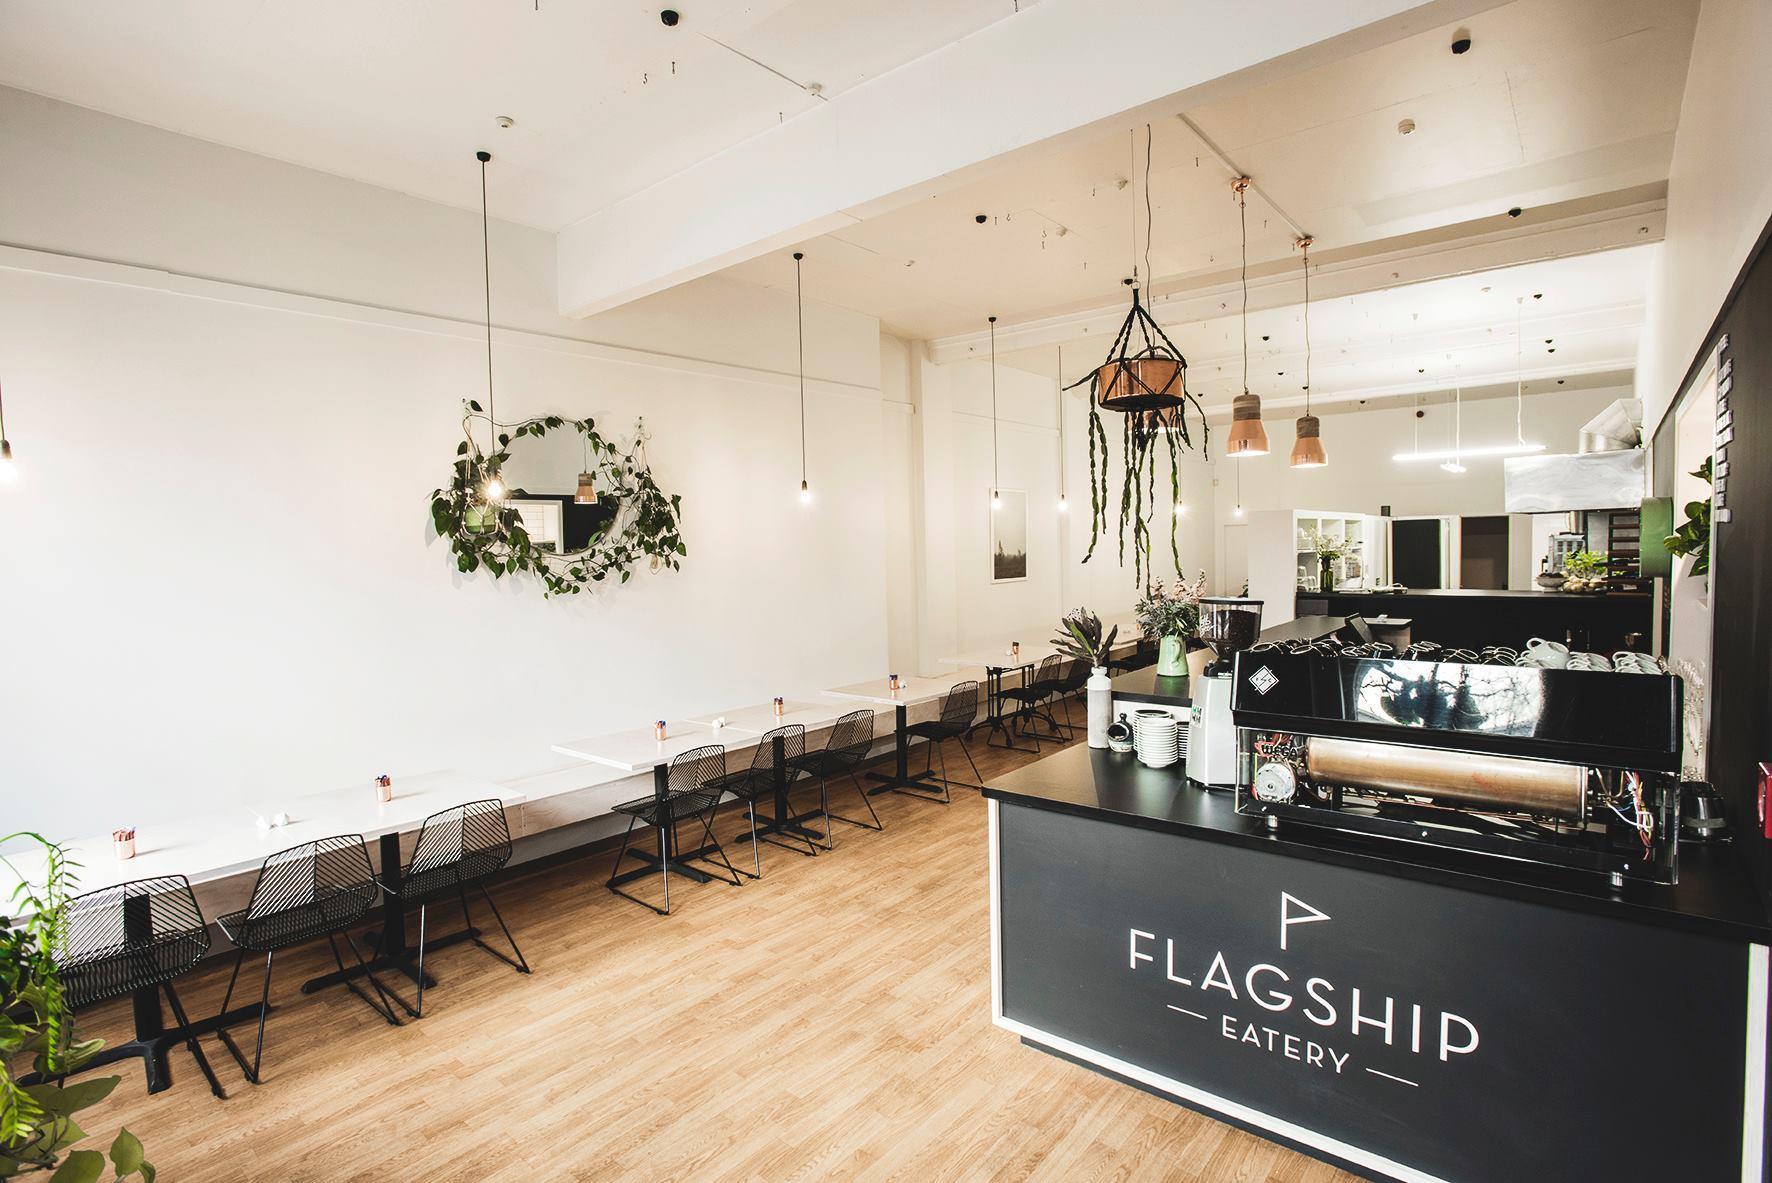 Flagship Eatery